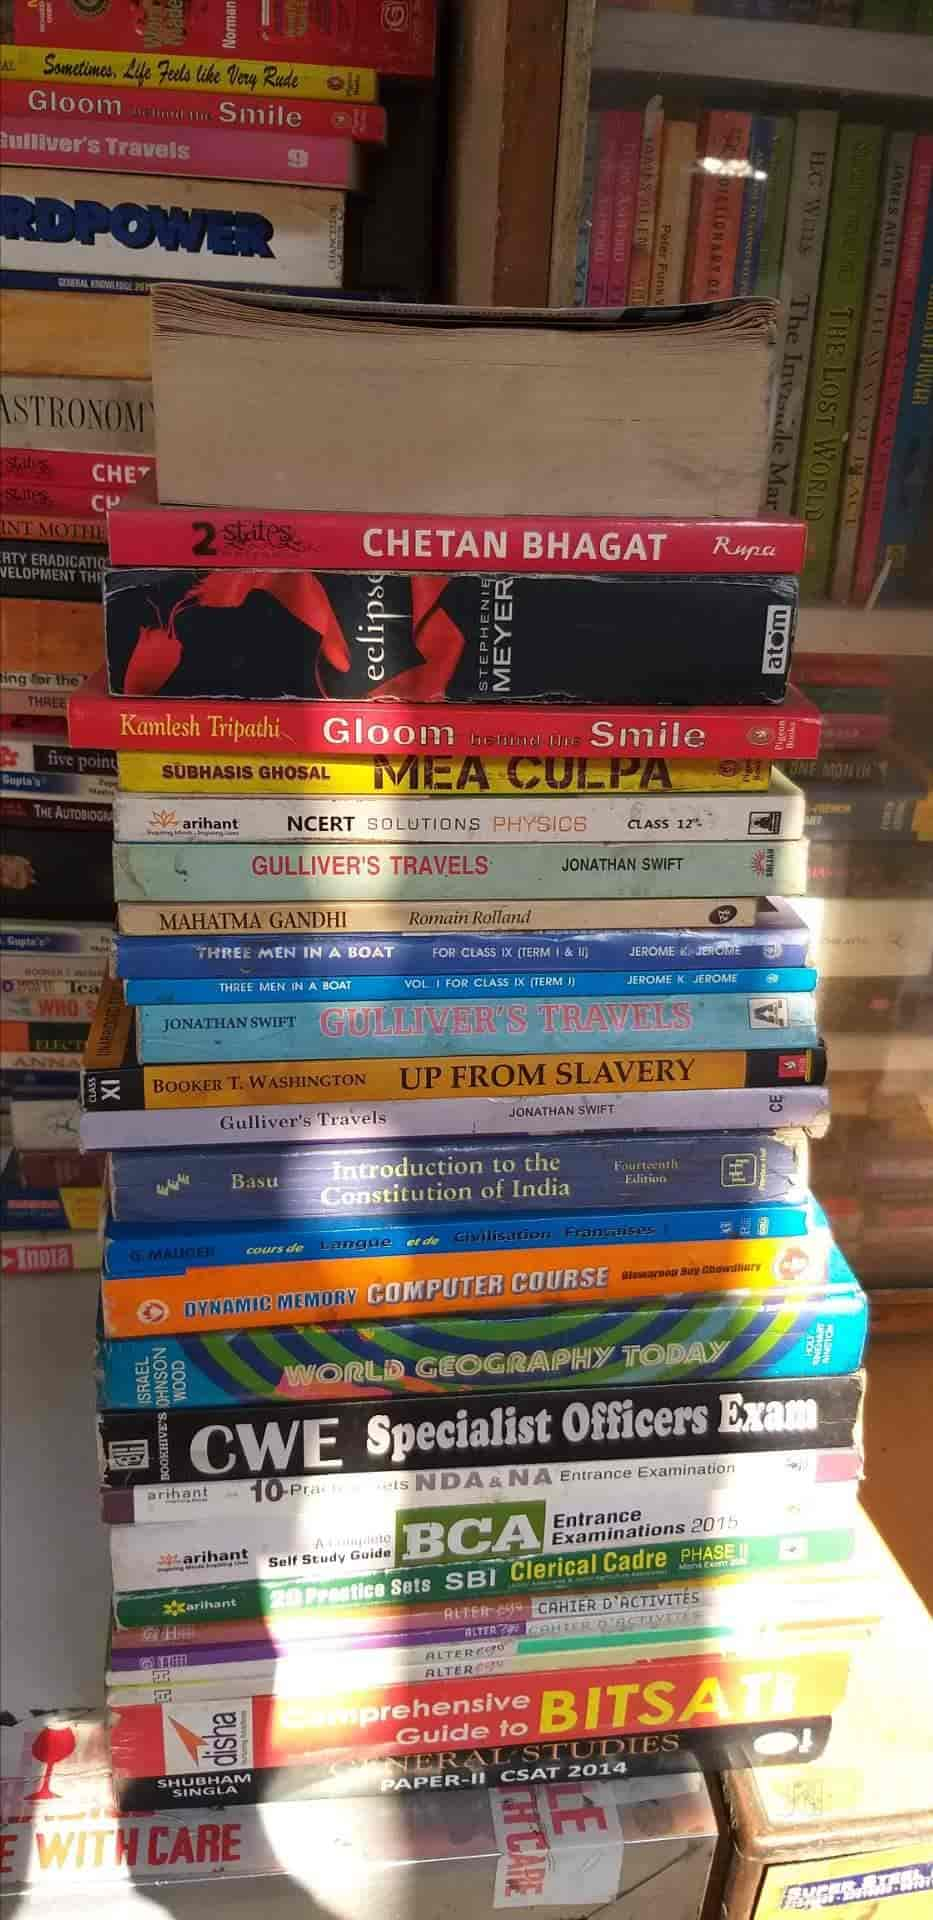 General Book Depot Photos, Chandni Chowk, Delhi- Pictures & Images